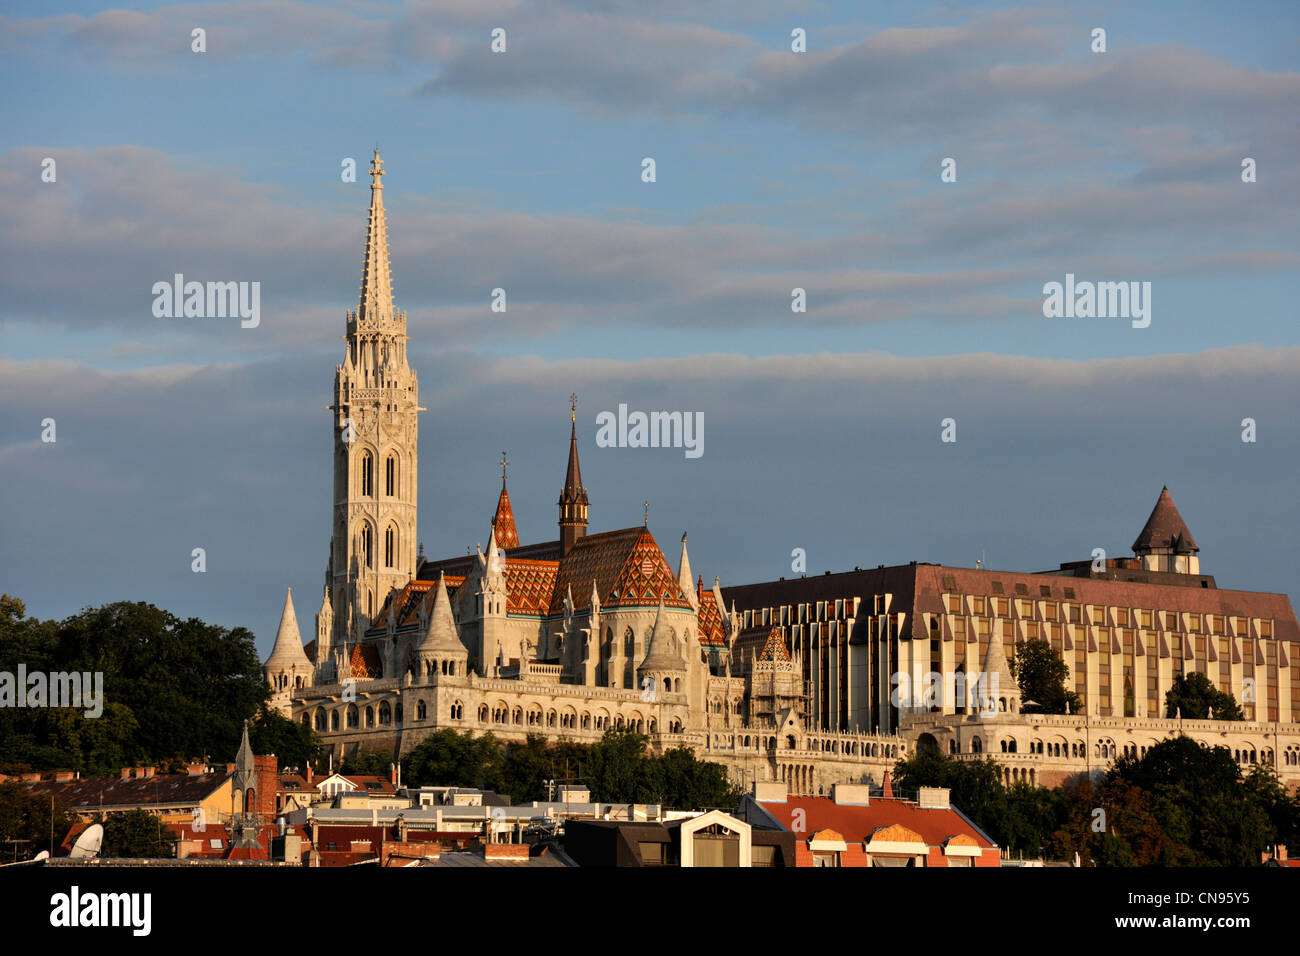 Hungary, Budapest, Saint Mathias church, Fishers' bastion, Castle Hill listed as World Heritage by UNESCO - Stock Image